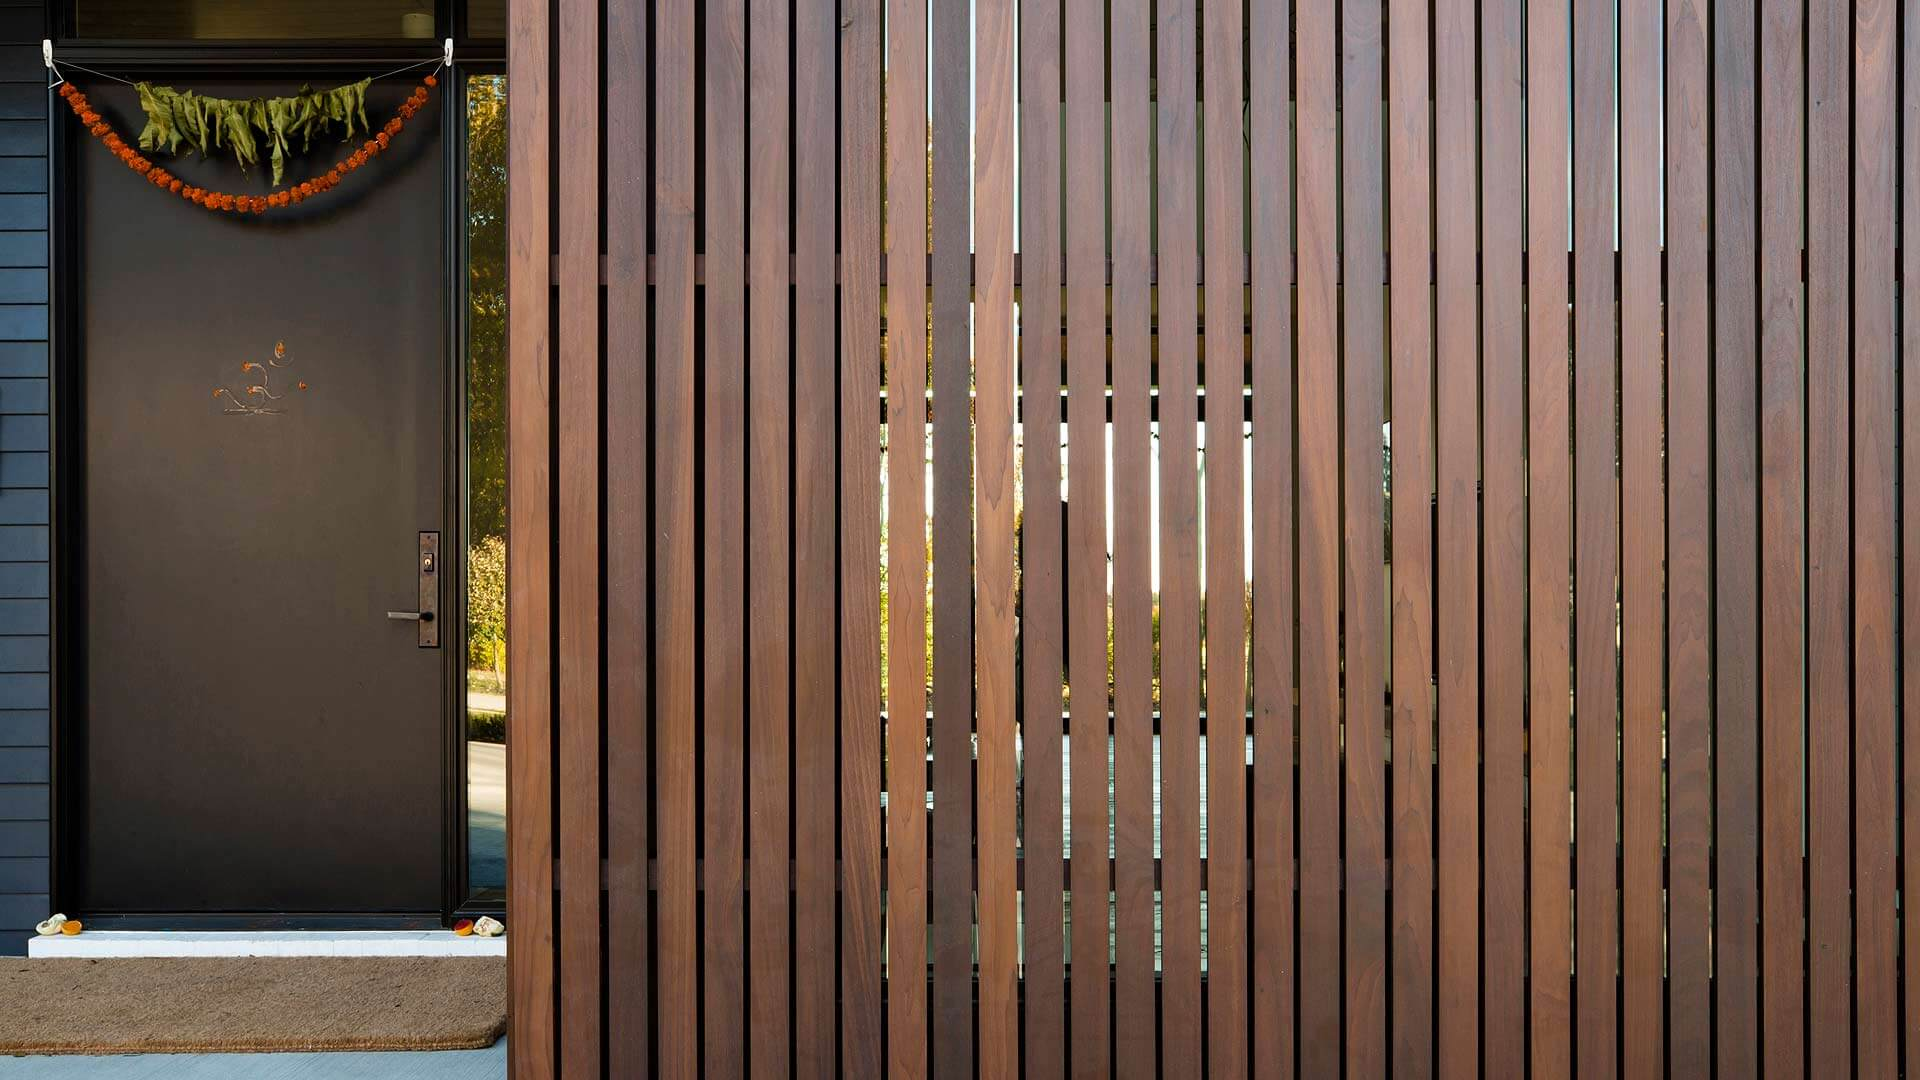 Ipe wood sliding screenwall detail (Puja) - Towne Oak Estates, Steffe Drive, Carmel, Indiana - Christopher Short, Derek Mills - Indianapolis Architects, HAUS | Architecture For Modern Lifestyles